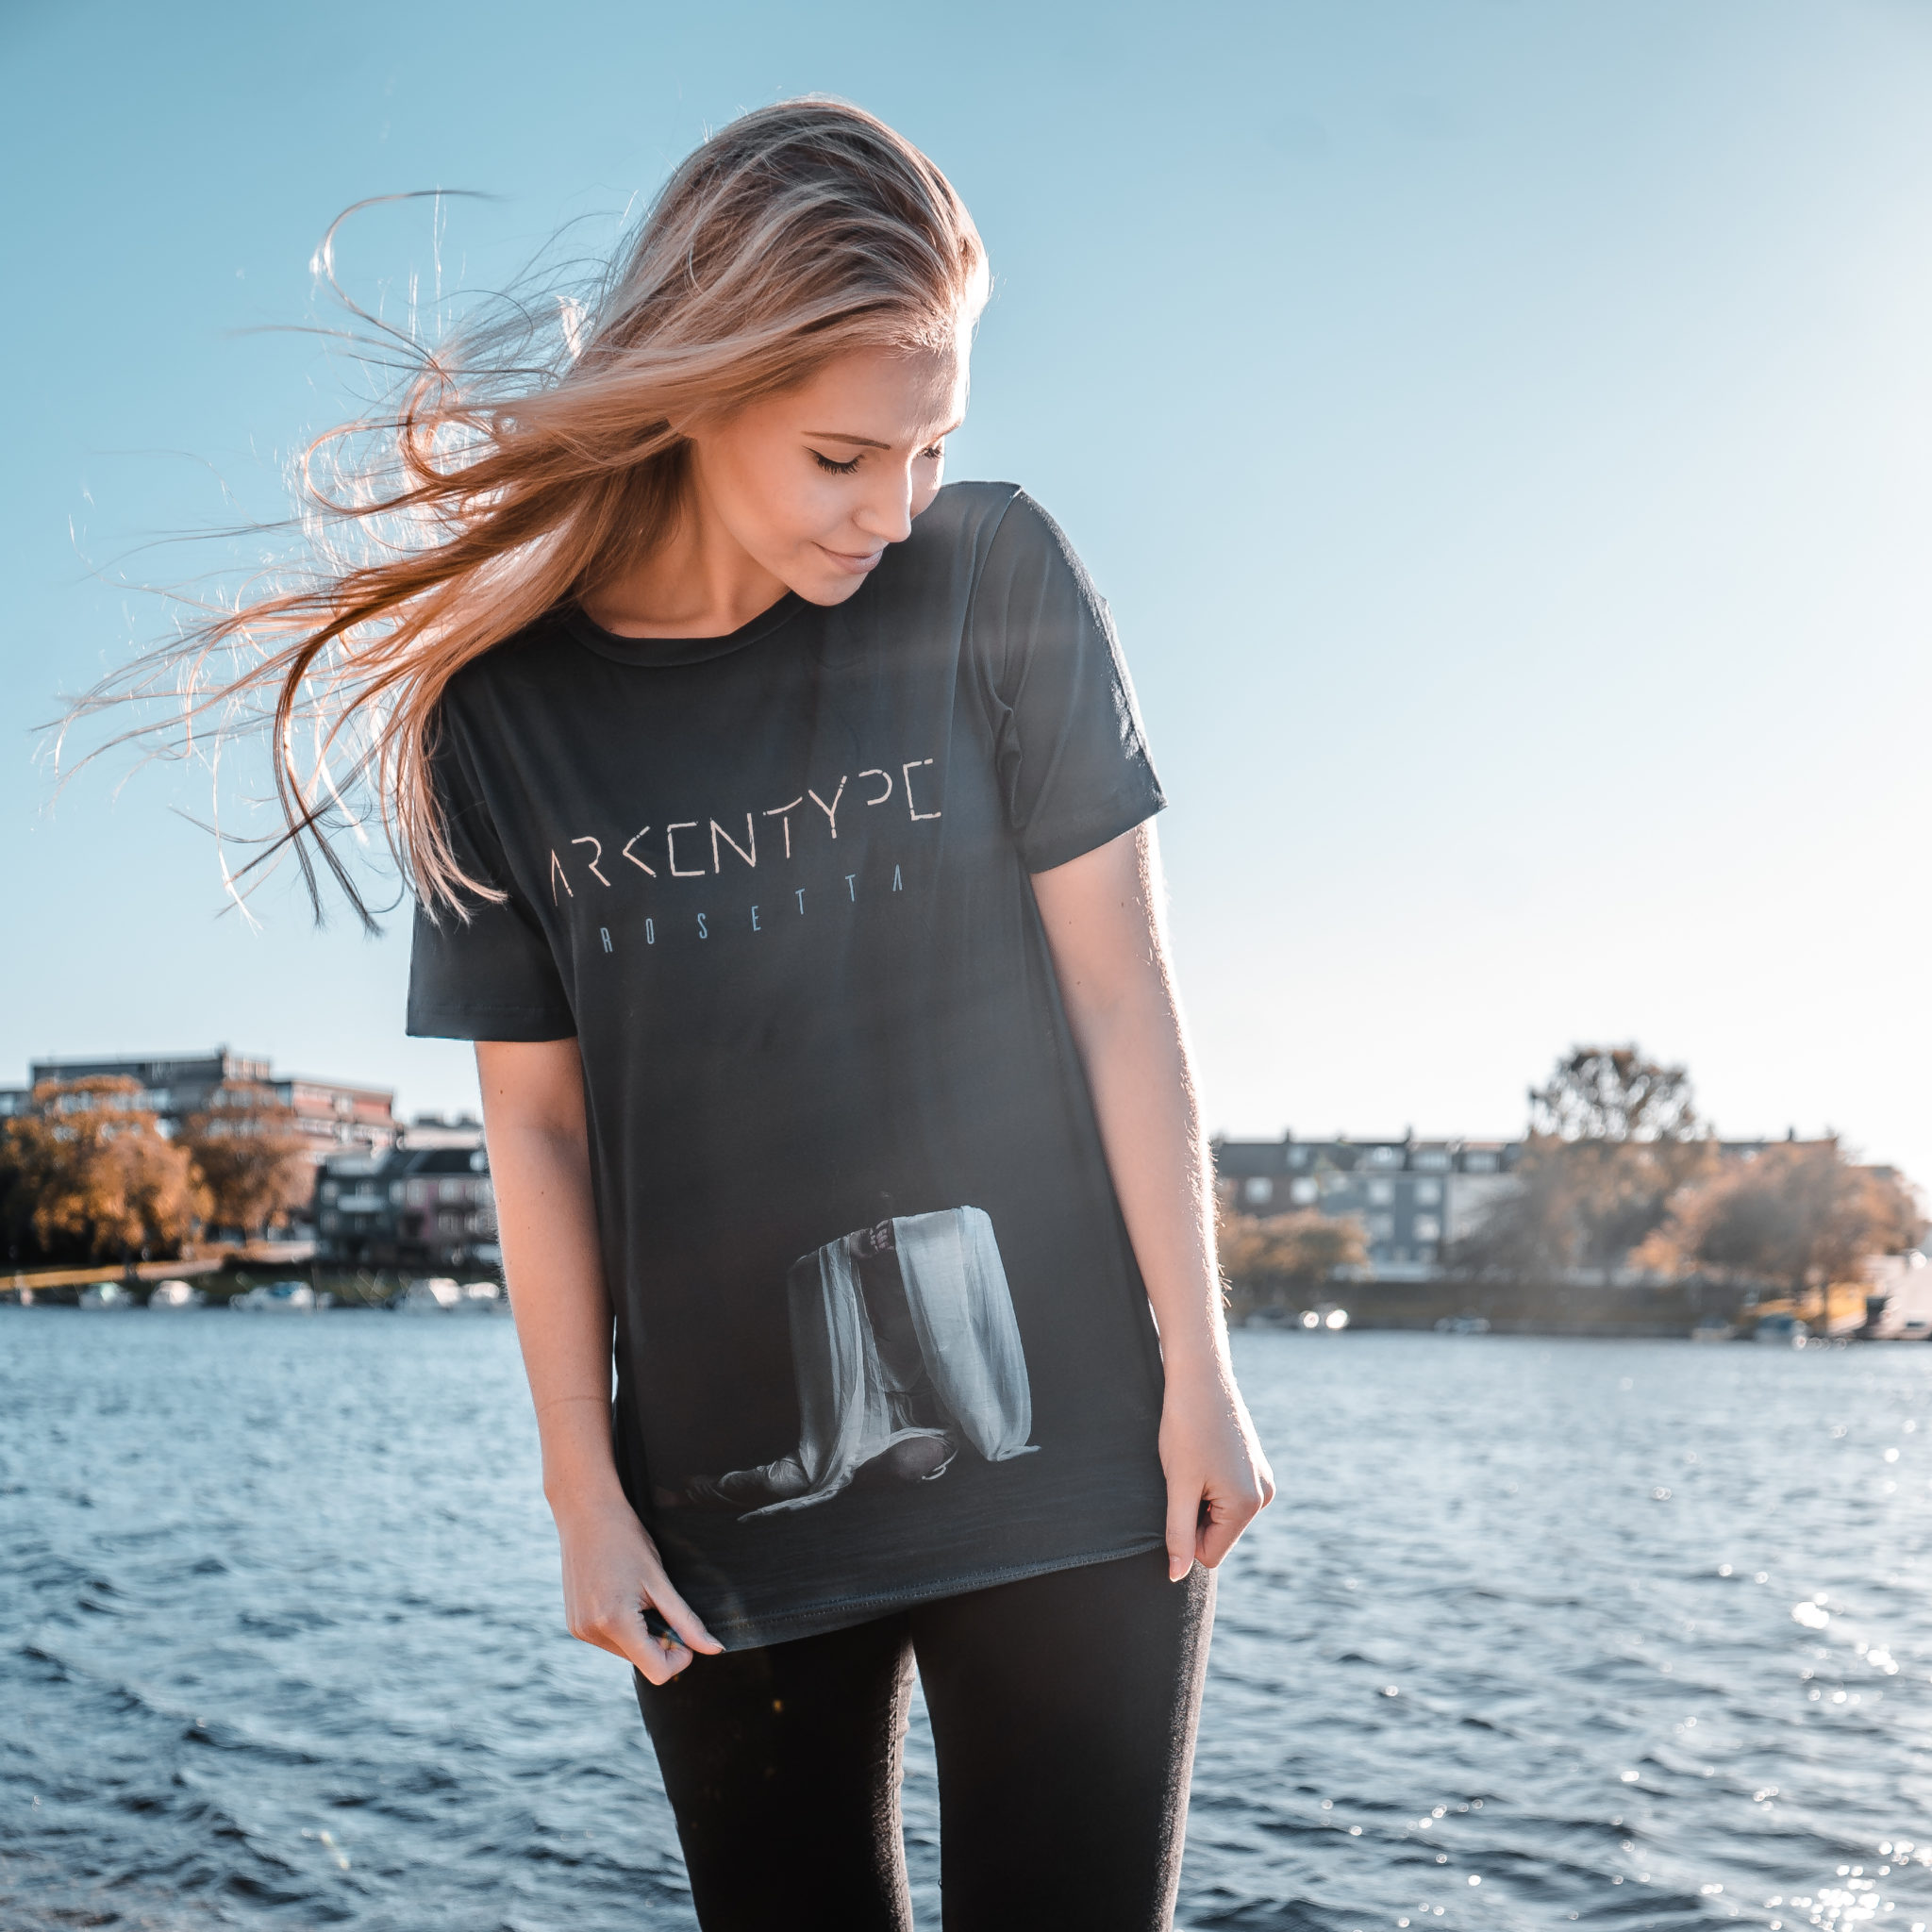 Rosetta giveaway – Win a signed limited edition t-shirt and other goodies!